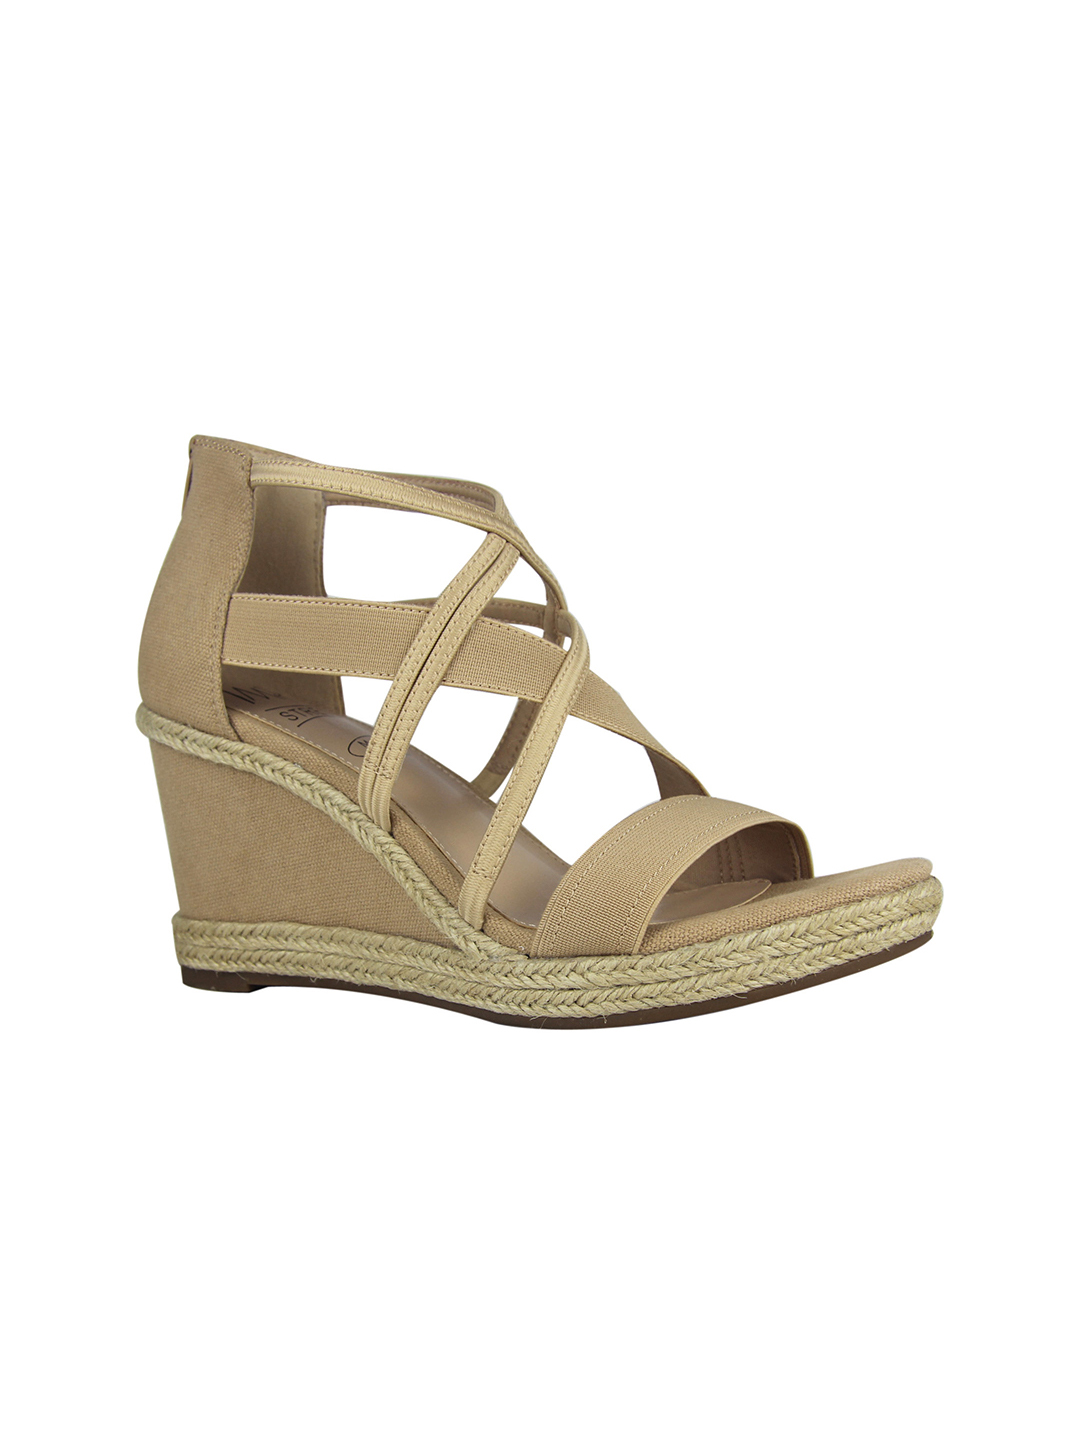 Impo Tacara Wedge Sandals - latte - Front